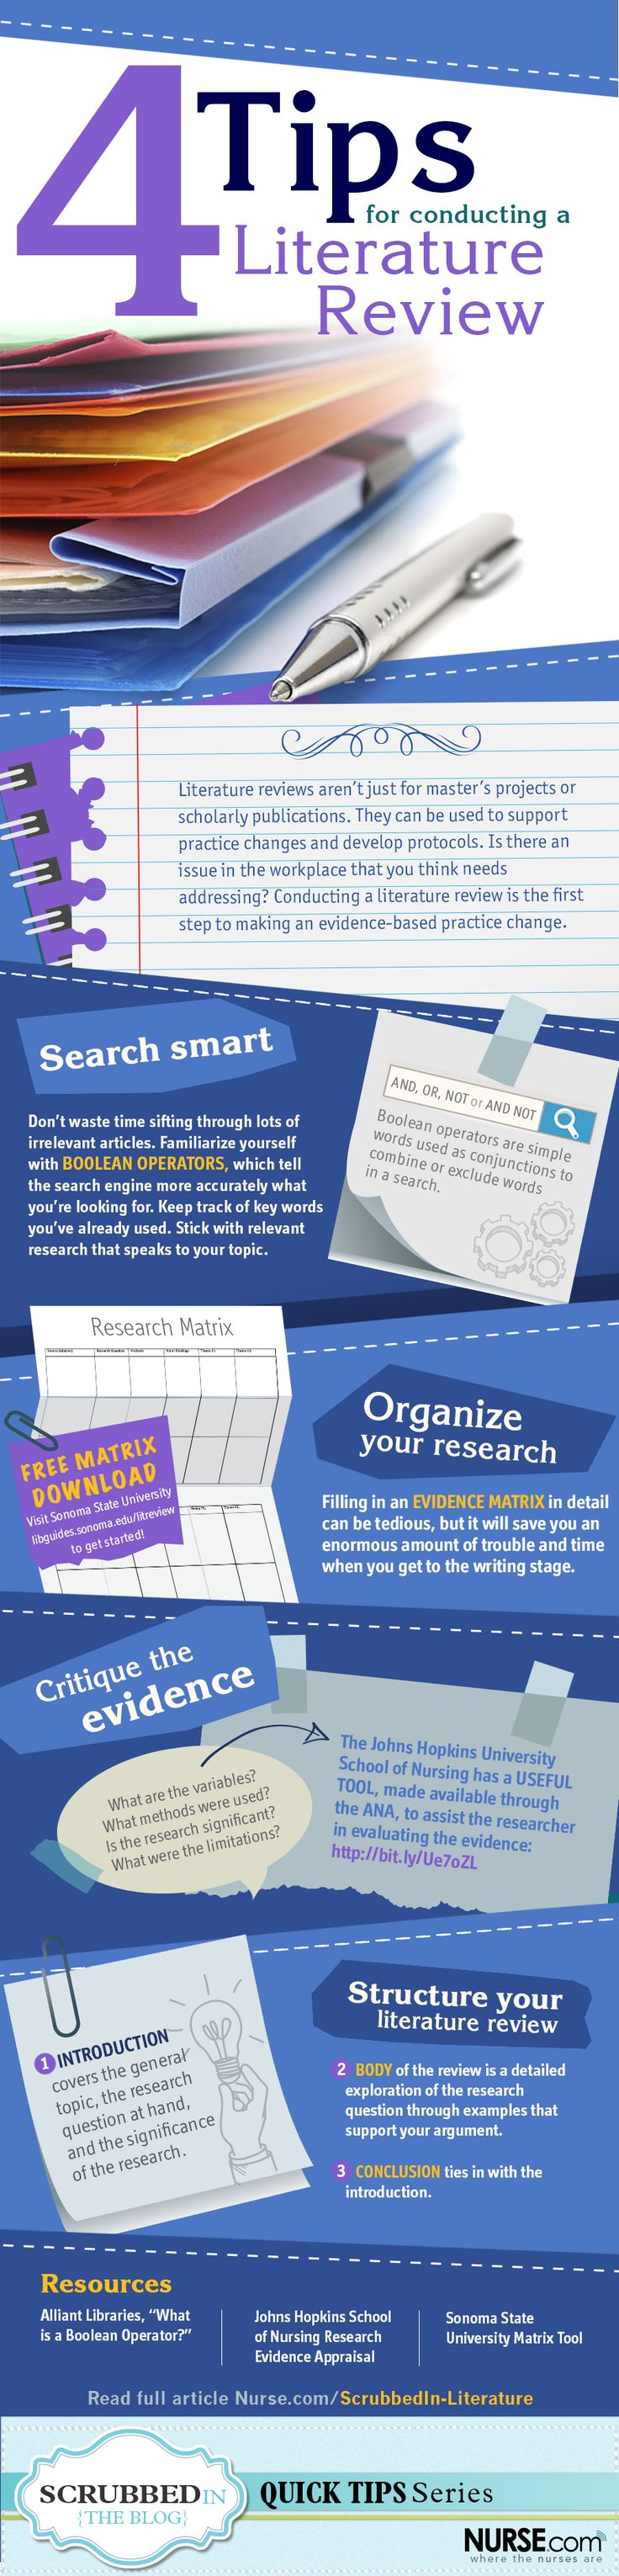 "Any clinical practice changes or advancement must begin with a gathering of evidence. But if the terms ""research"" or ""literature review"" normally make you groan, they don't need to anymore. It's not as bad as it seems. Trust us! With this infographic, you'll have all the tips and tricks you need to make your literature review fast and painless."